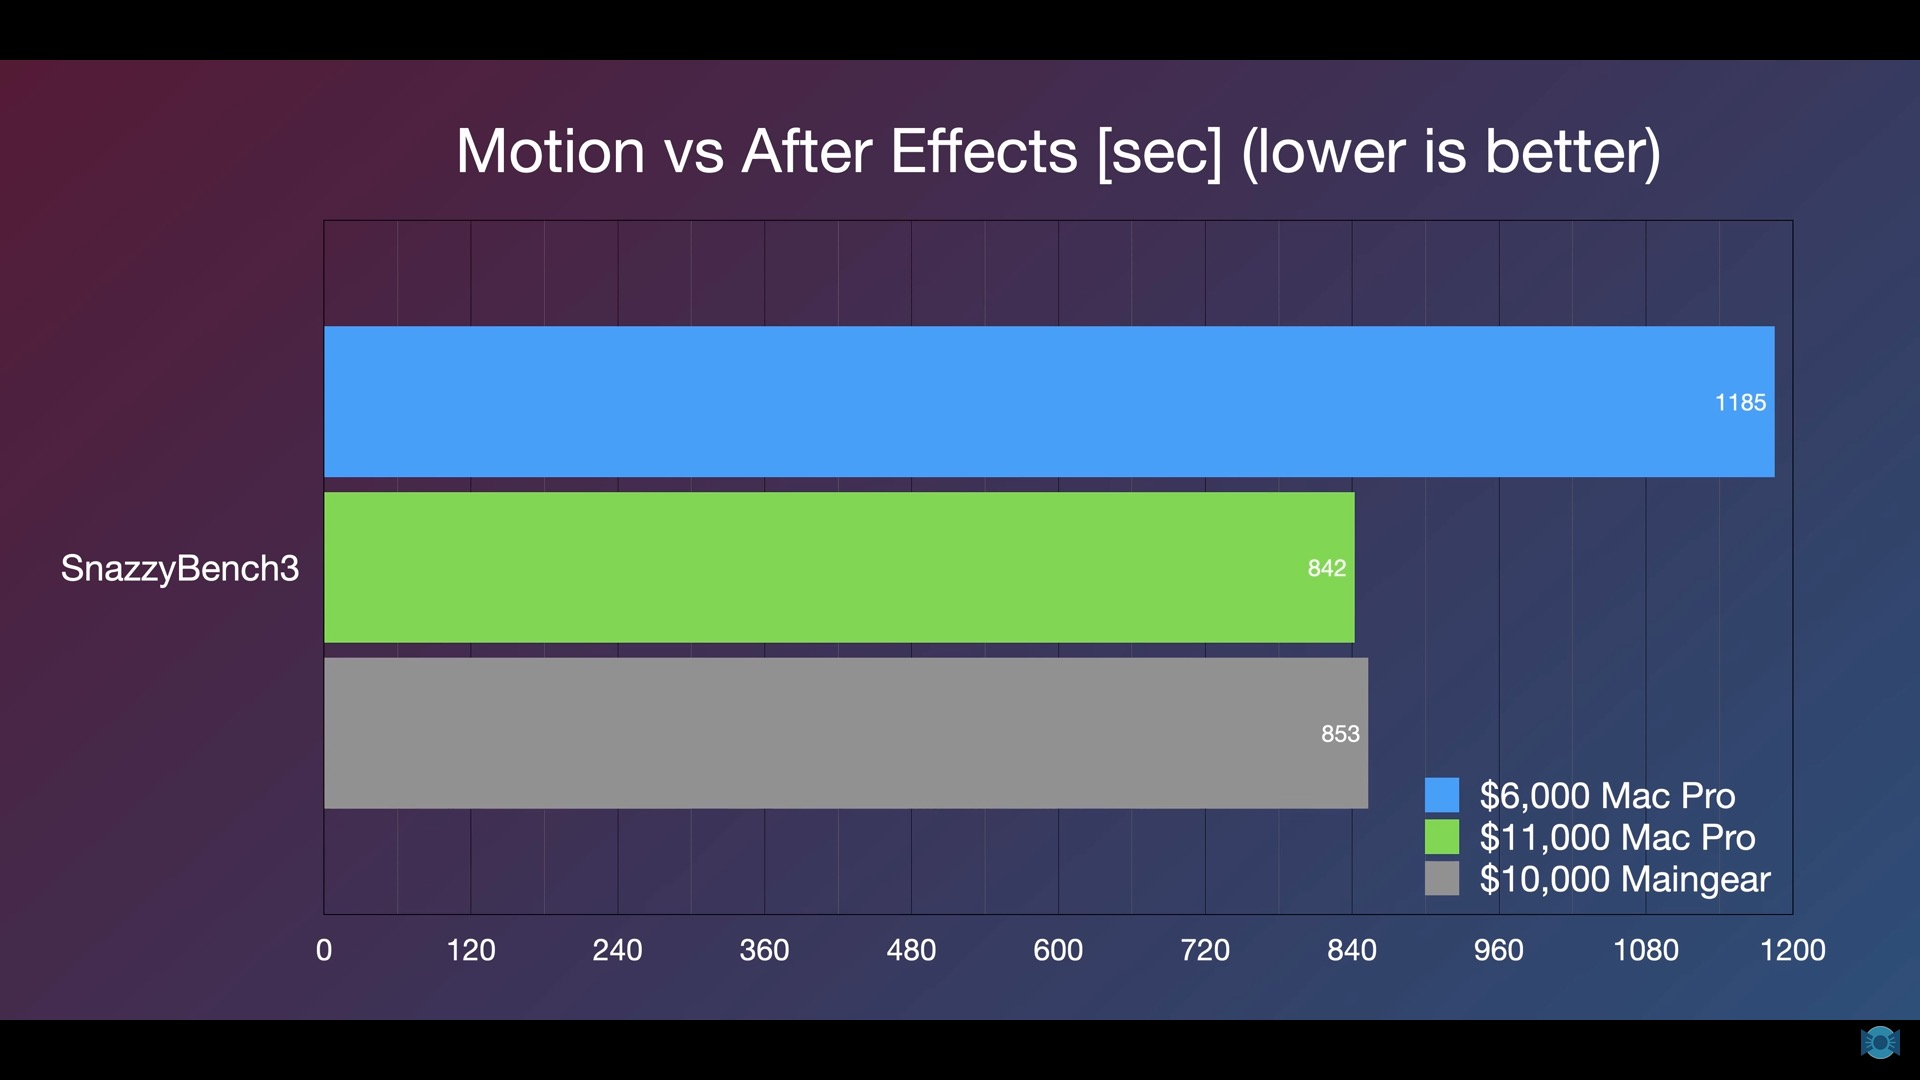 Motion vs After Effects